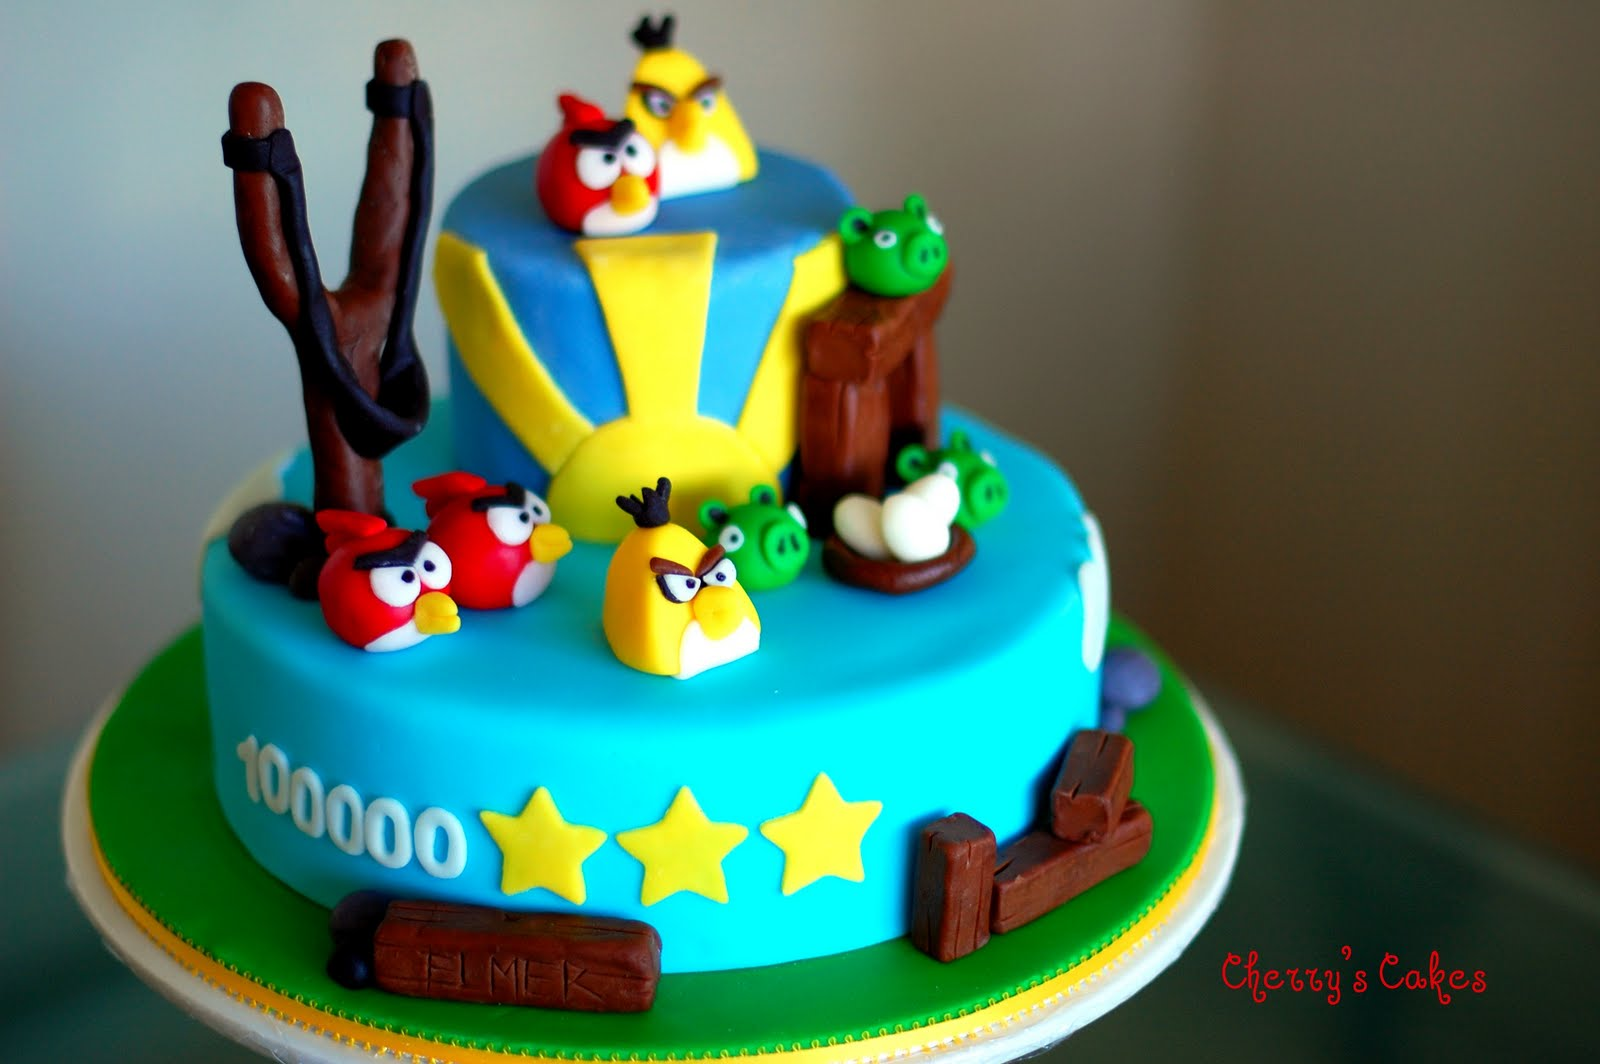 Cherrys Cakes Angry Birds